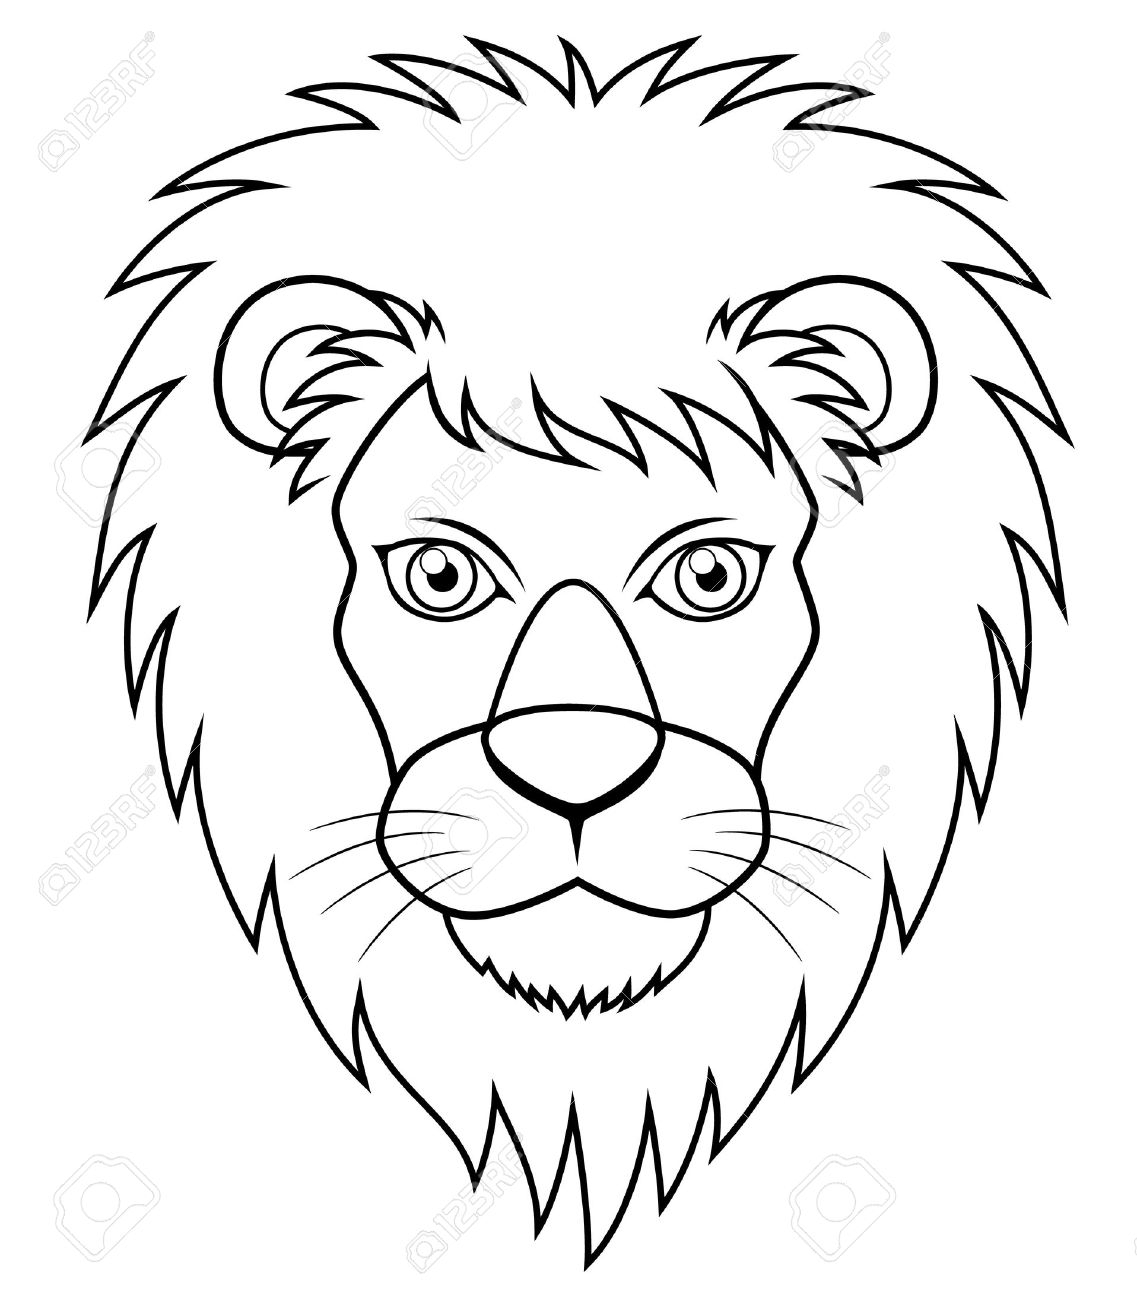 1137x1300 Cartoon Lion Drawing How To Draw A Lion Face Lion Head Easy Draw